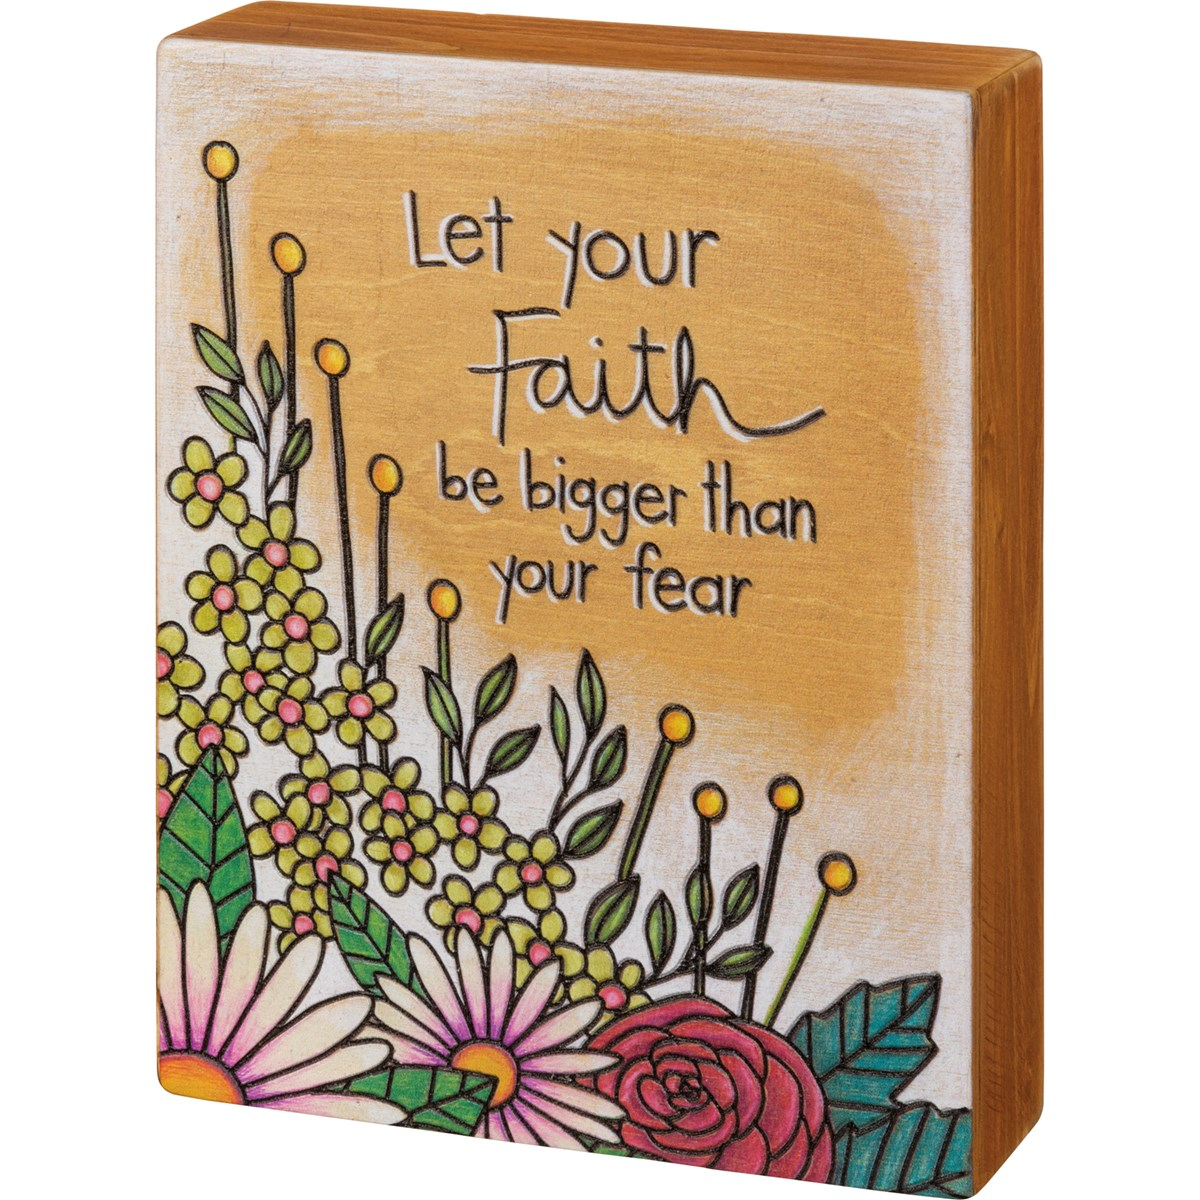 "Box Sign - Let Your Faith Be Bigger Than Your Fear - 6"" x 8"" x 1.75"" - Wood"